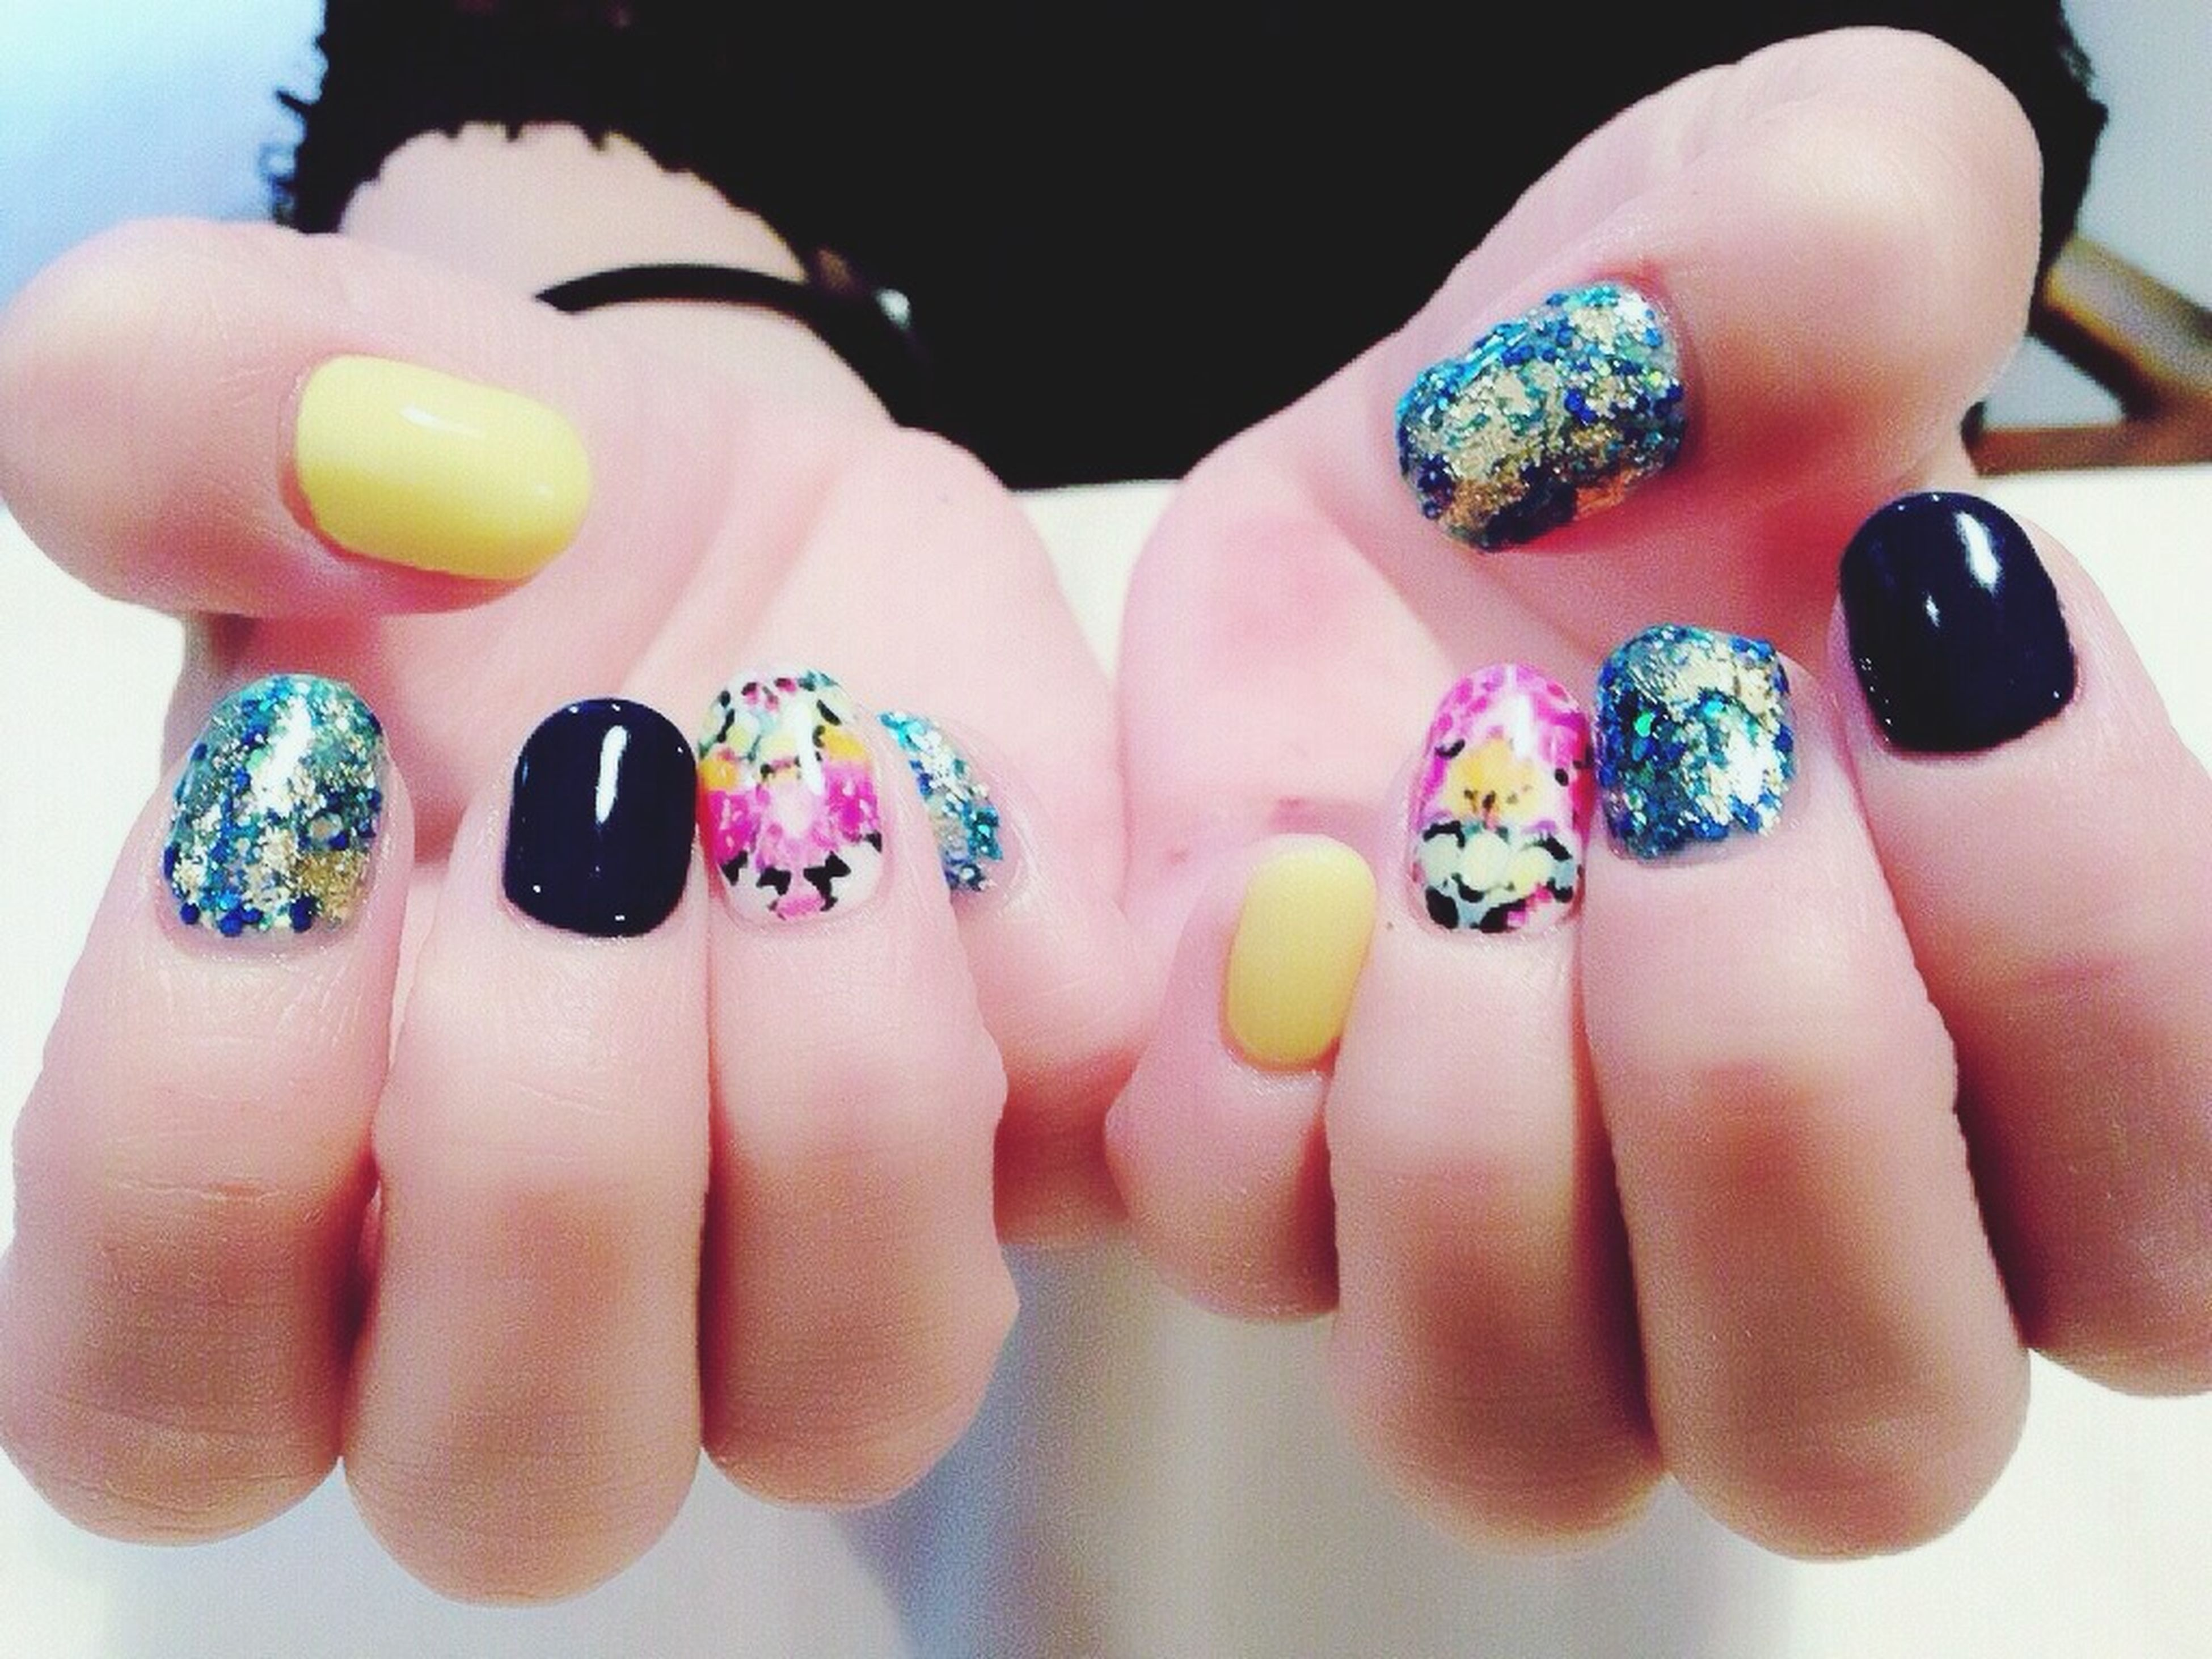 person, indoors, part of, holding, lifestyles, multi colored, leisure activity, human finger, food and drink, cropped, close-up, personal perspective, nail polish, high angle view, showing, variation